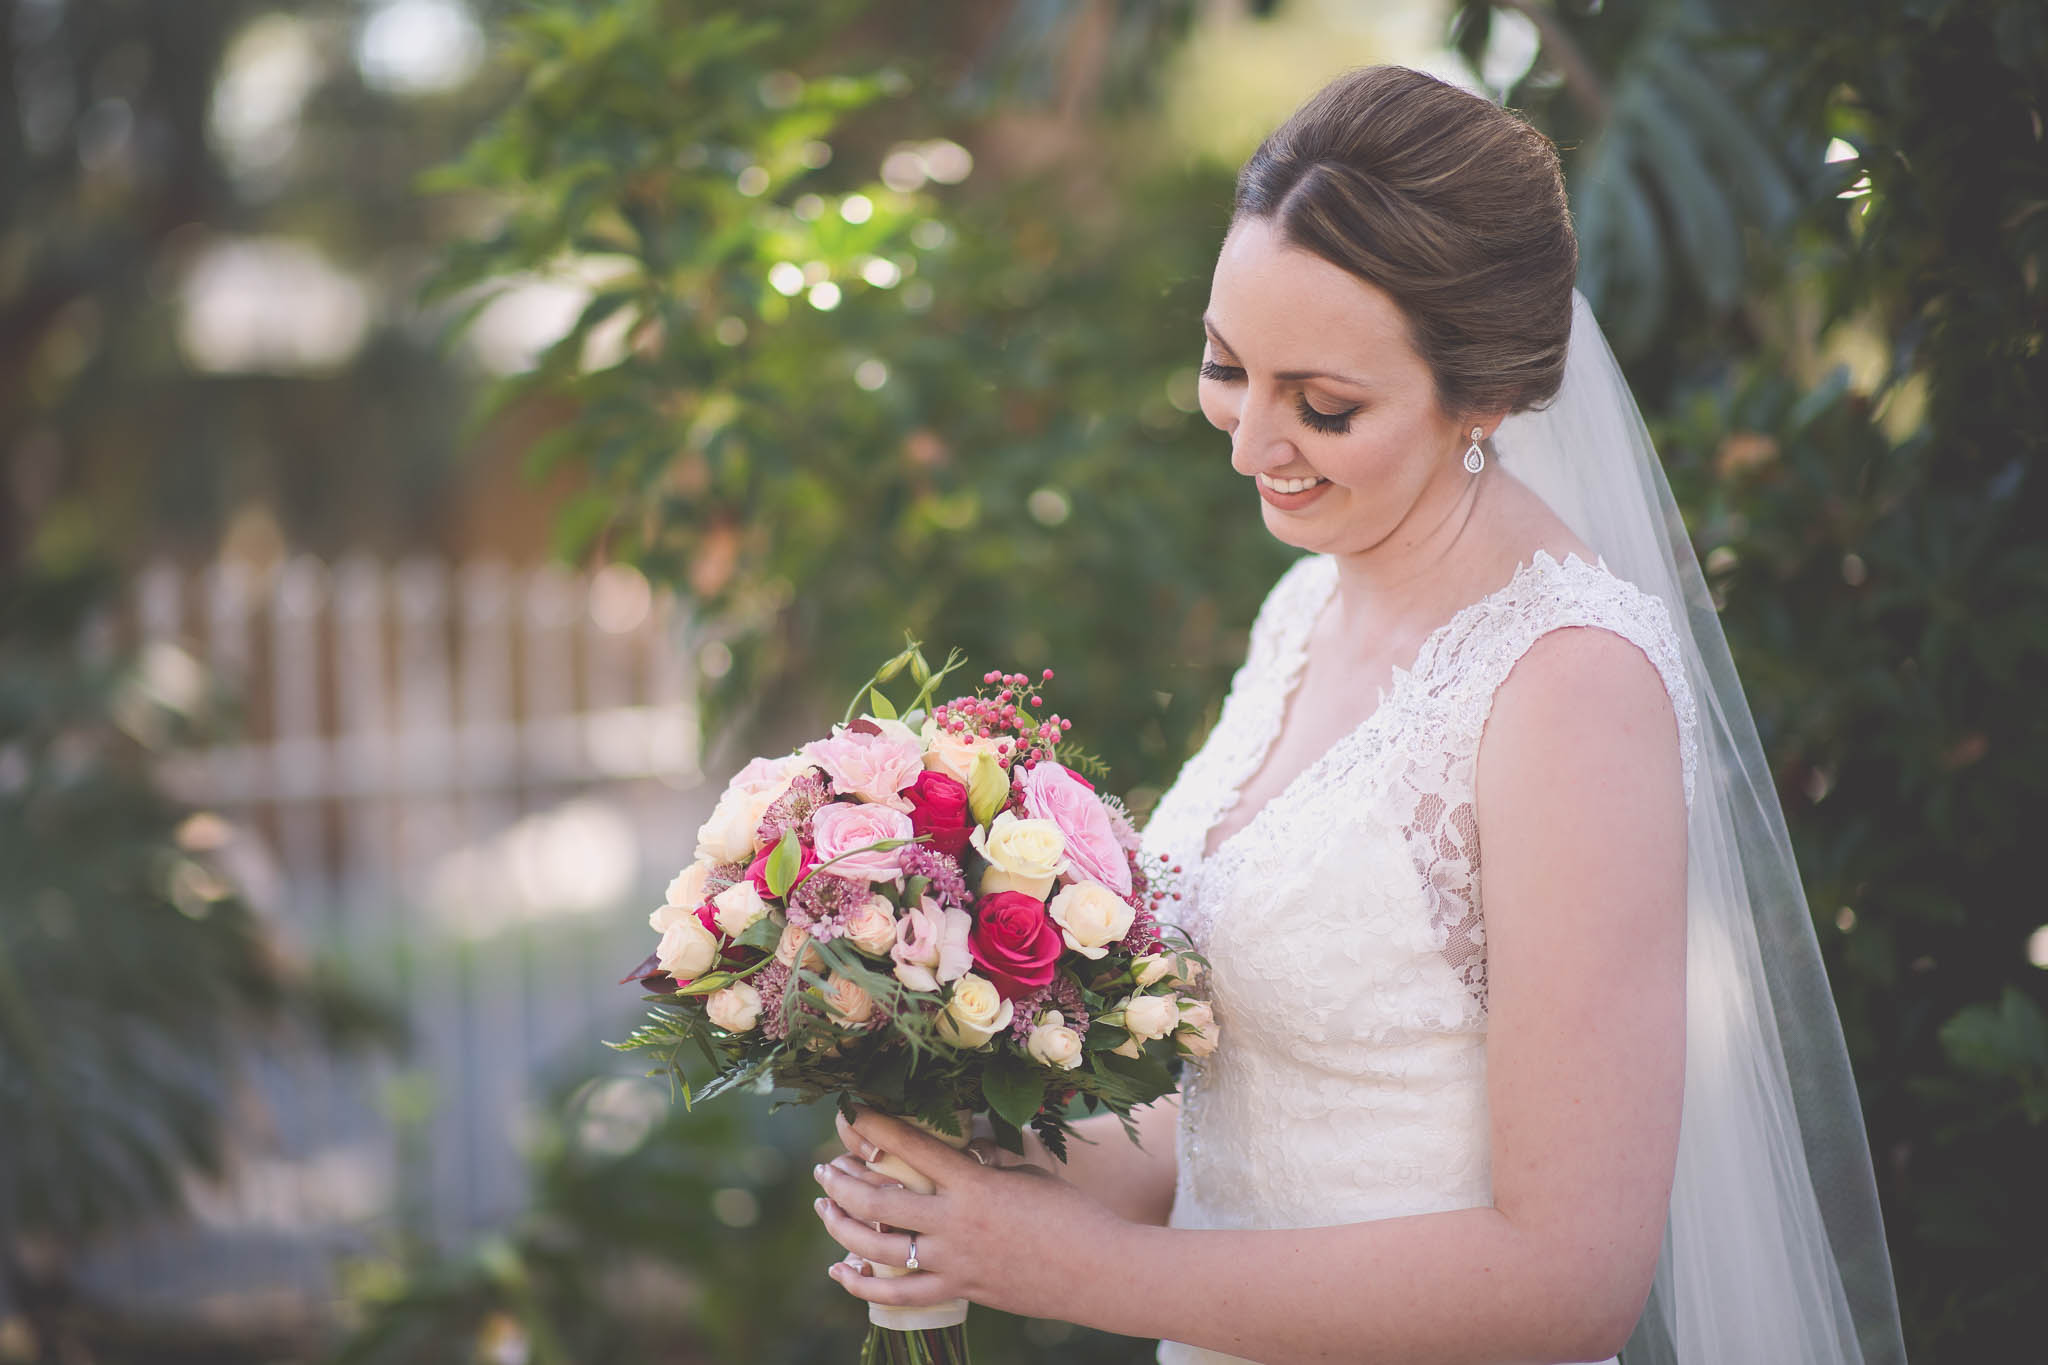 Melbourne wedding photography of the bride smiling at her flowers in the bouquet